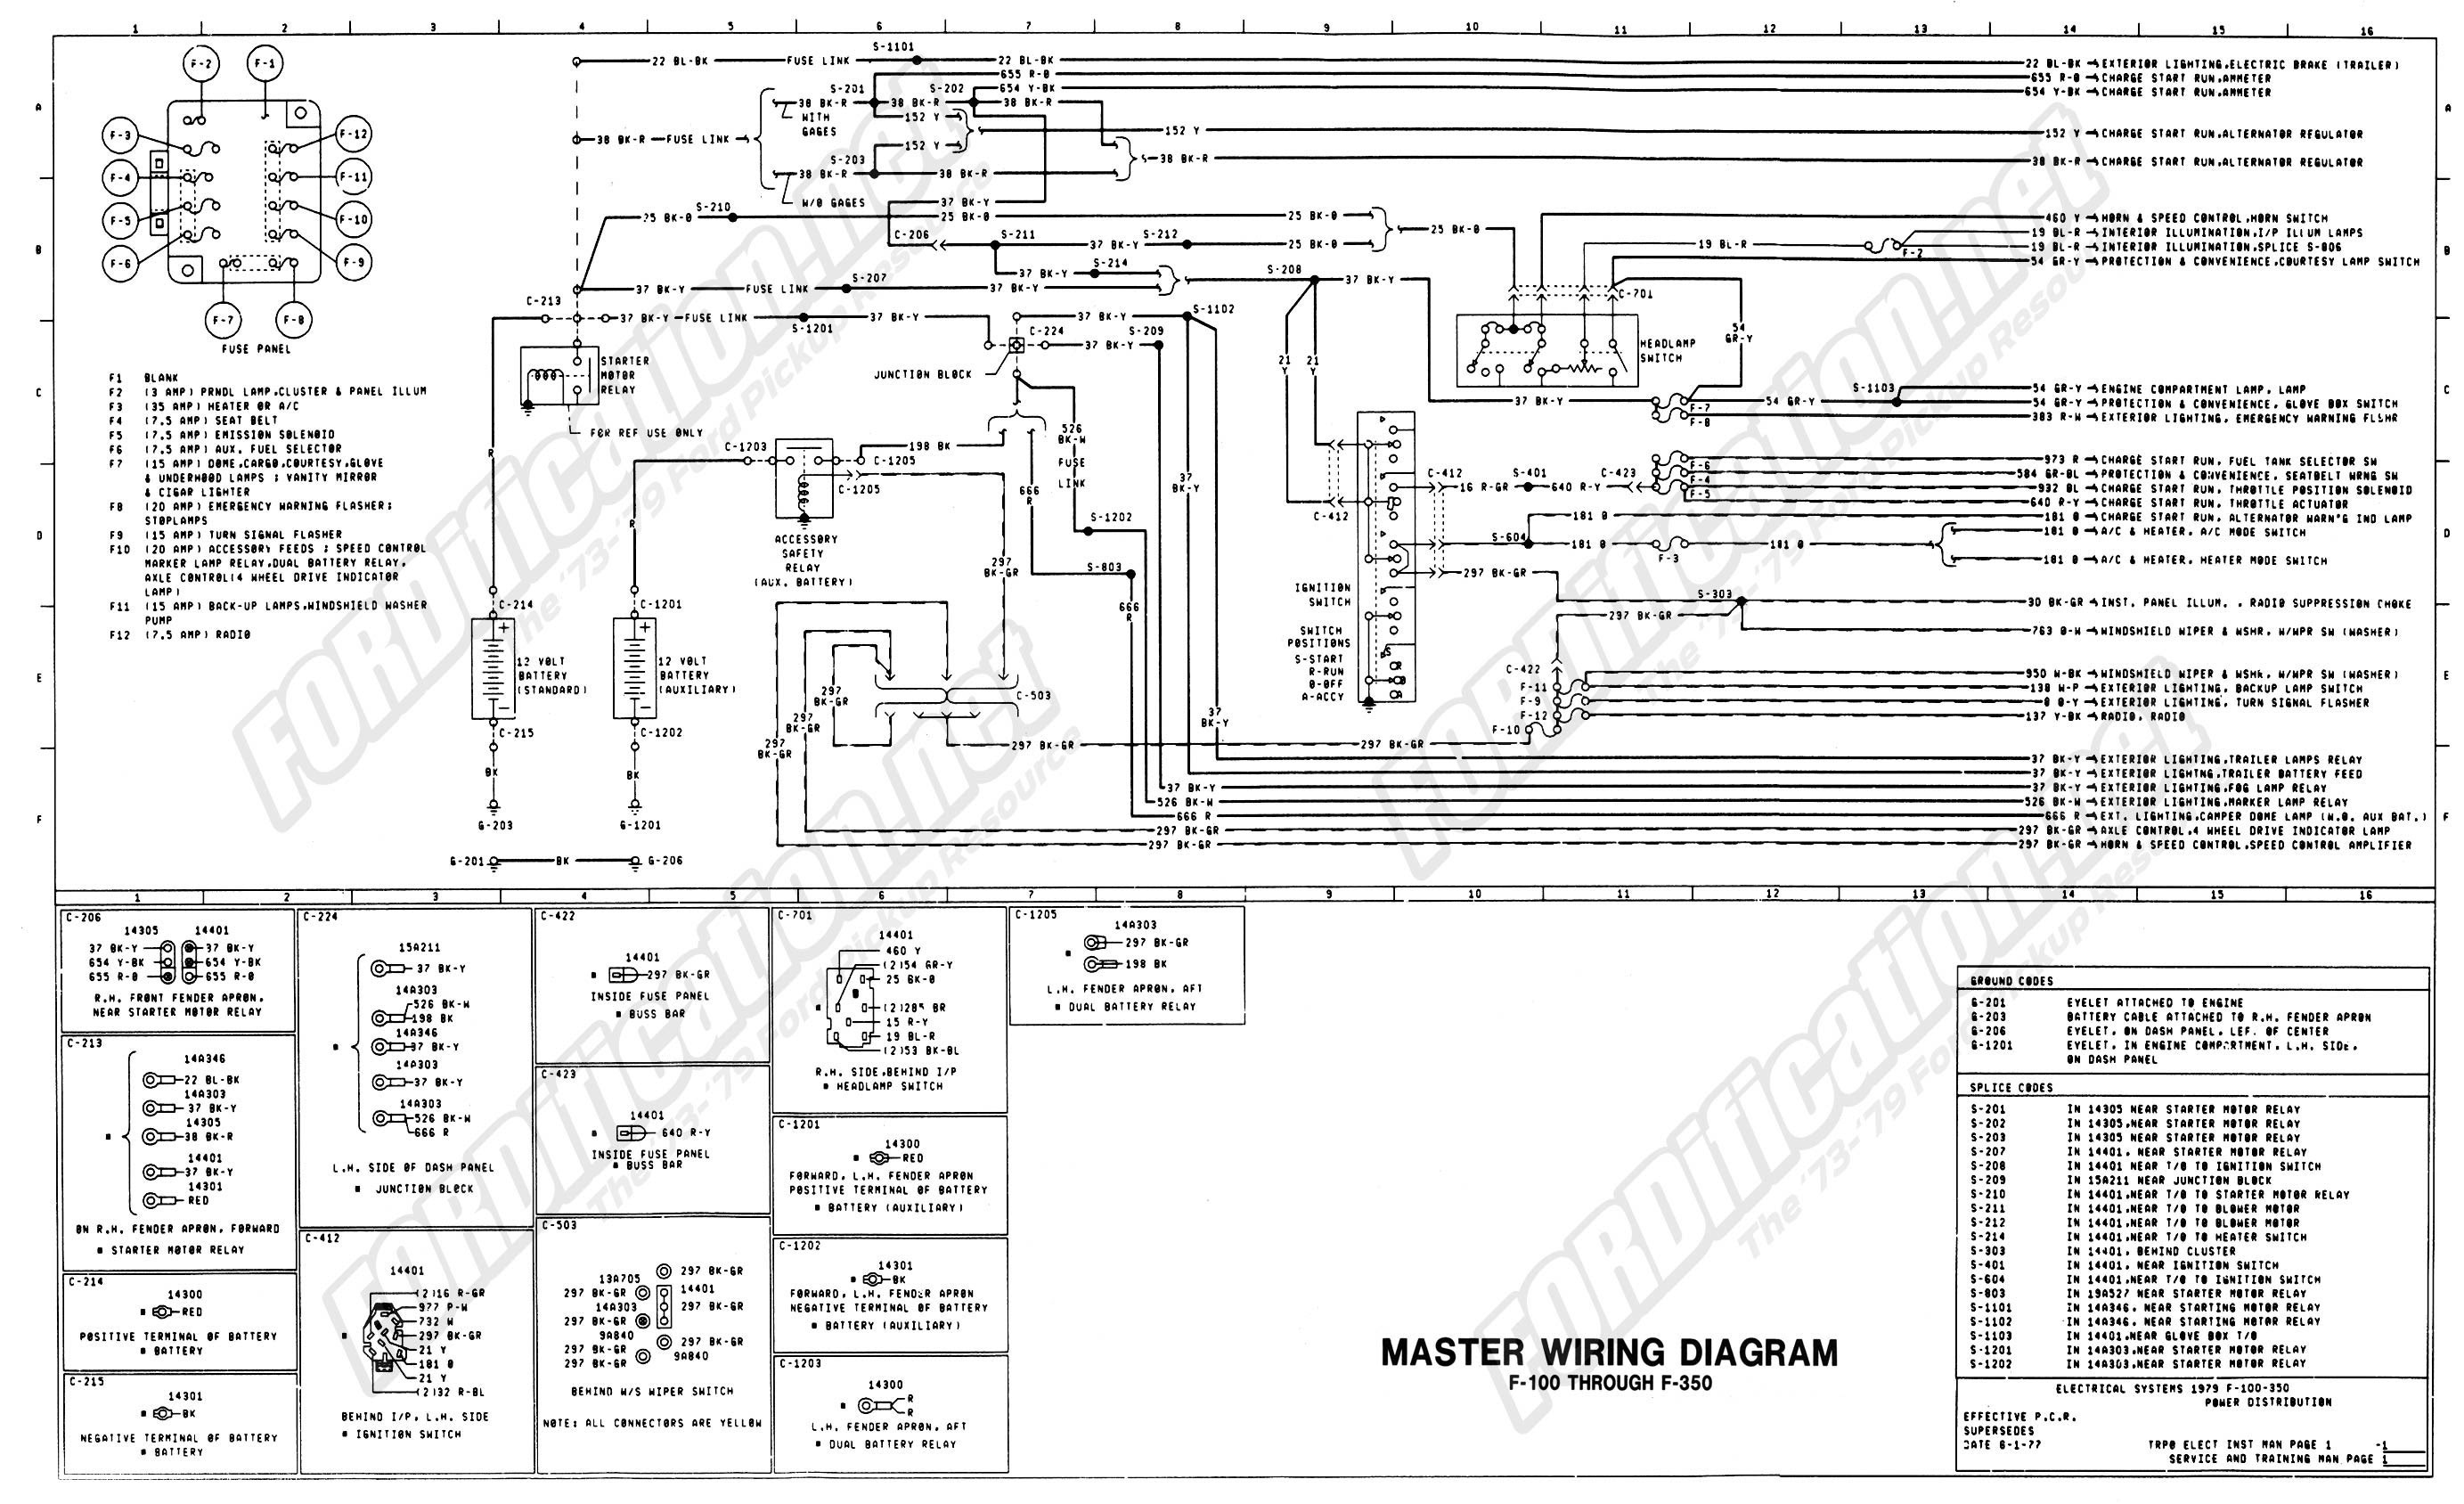 2b6797 P 38 Fuse Box Wiring Wiring Library